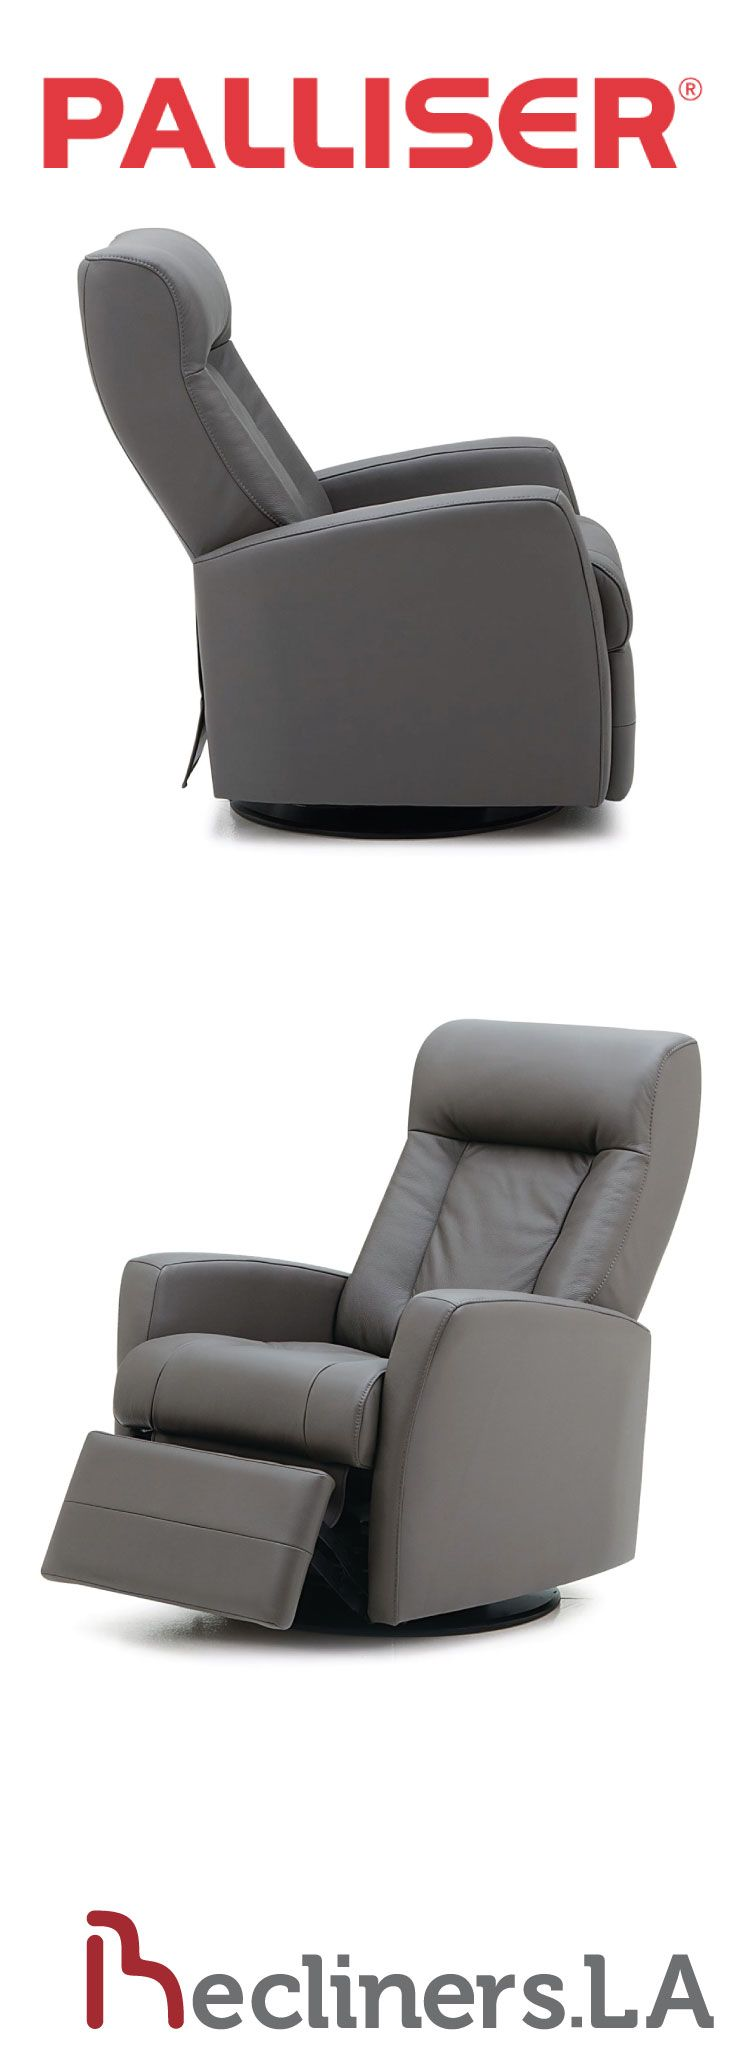 Palliser Leather Recliner Integrated Foot Rest Ottoman  Http://www.recliners.la/